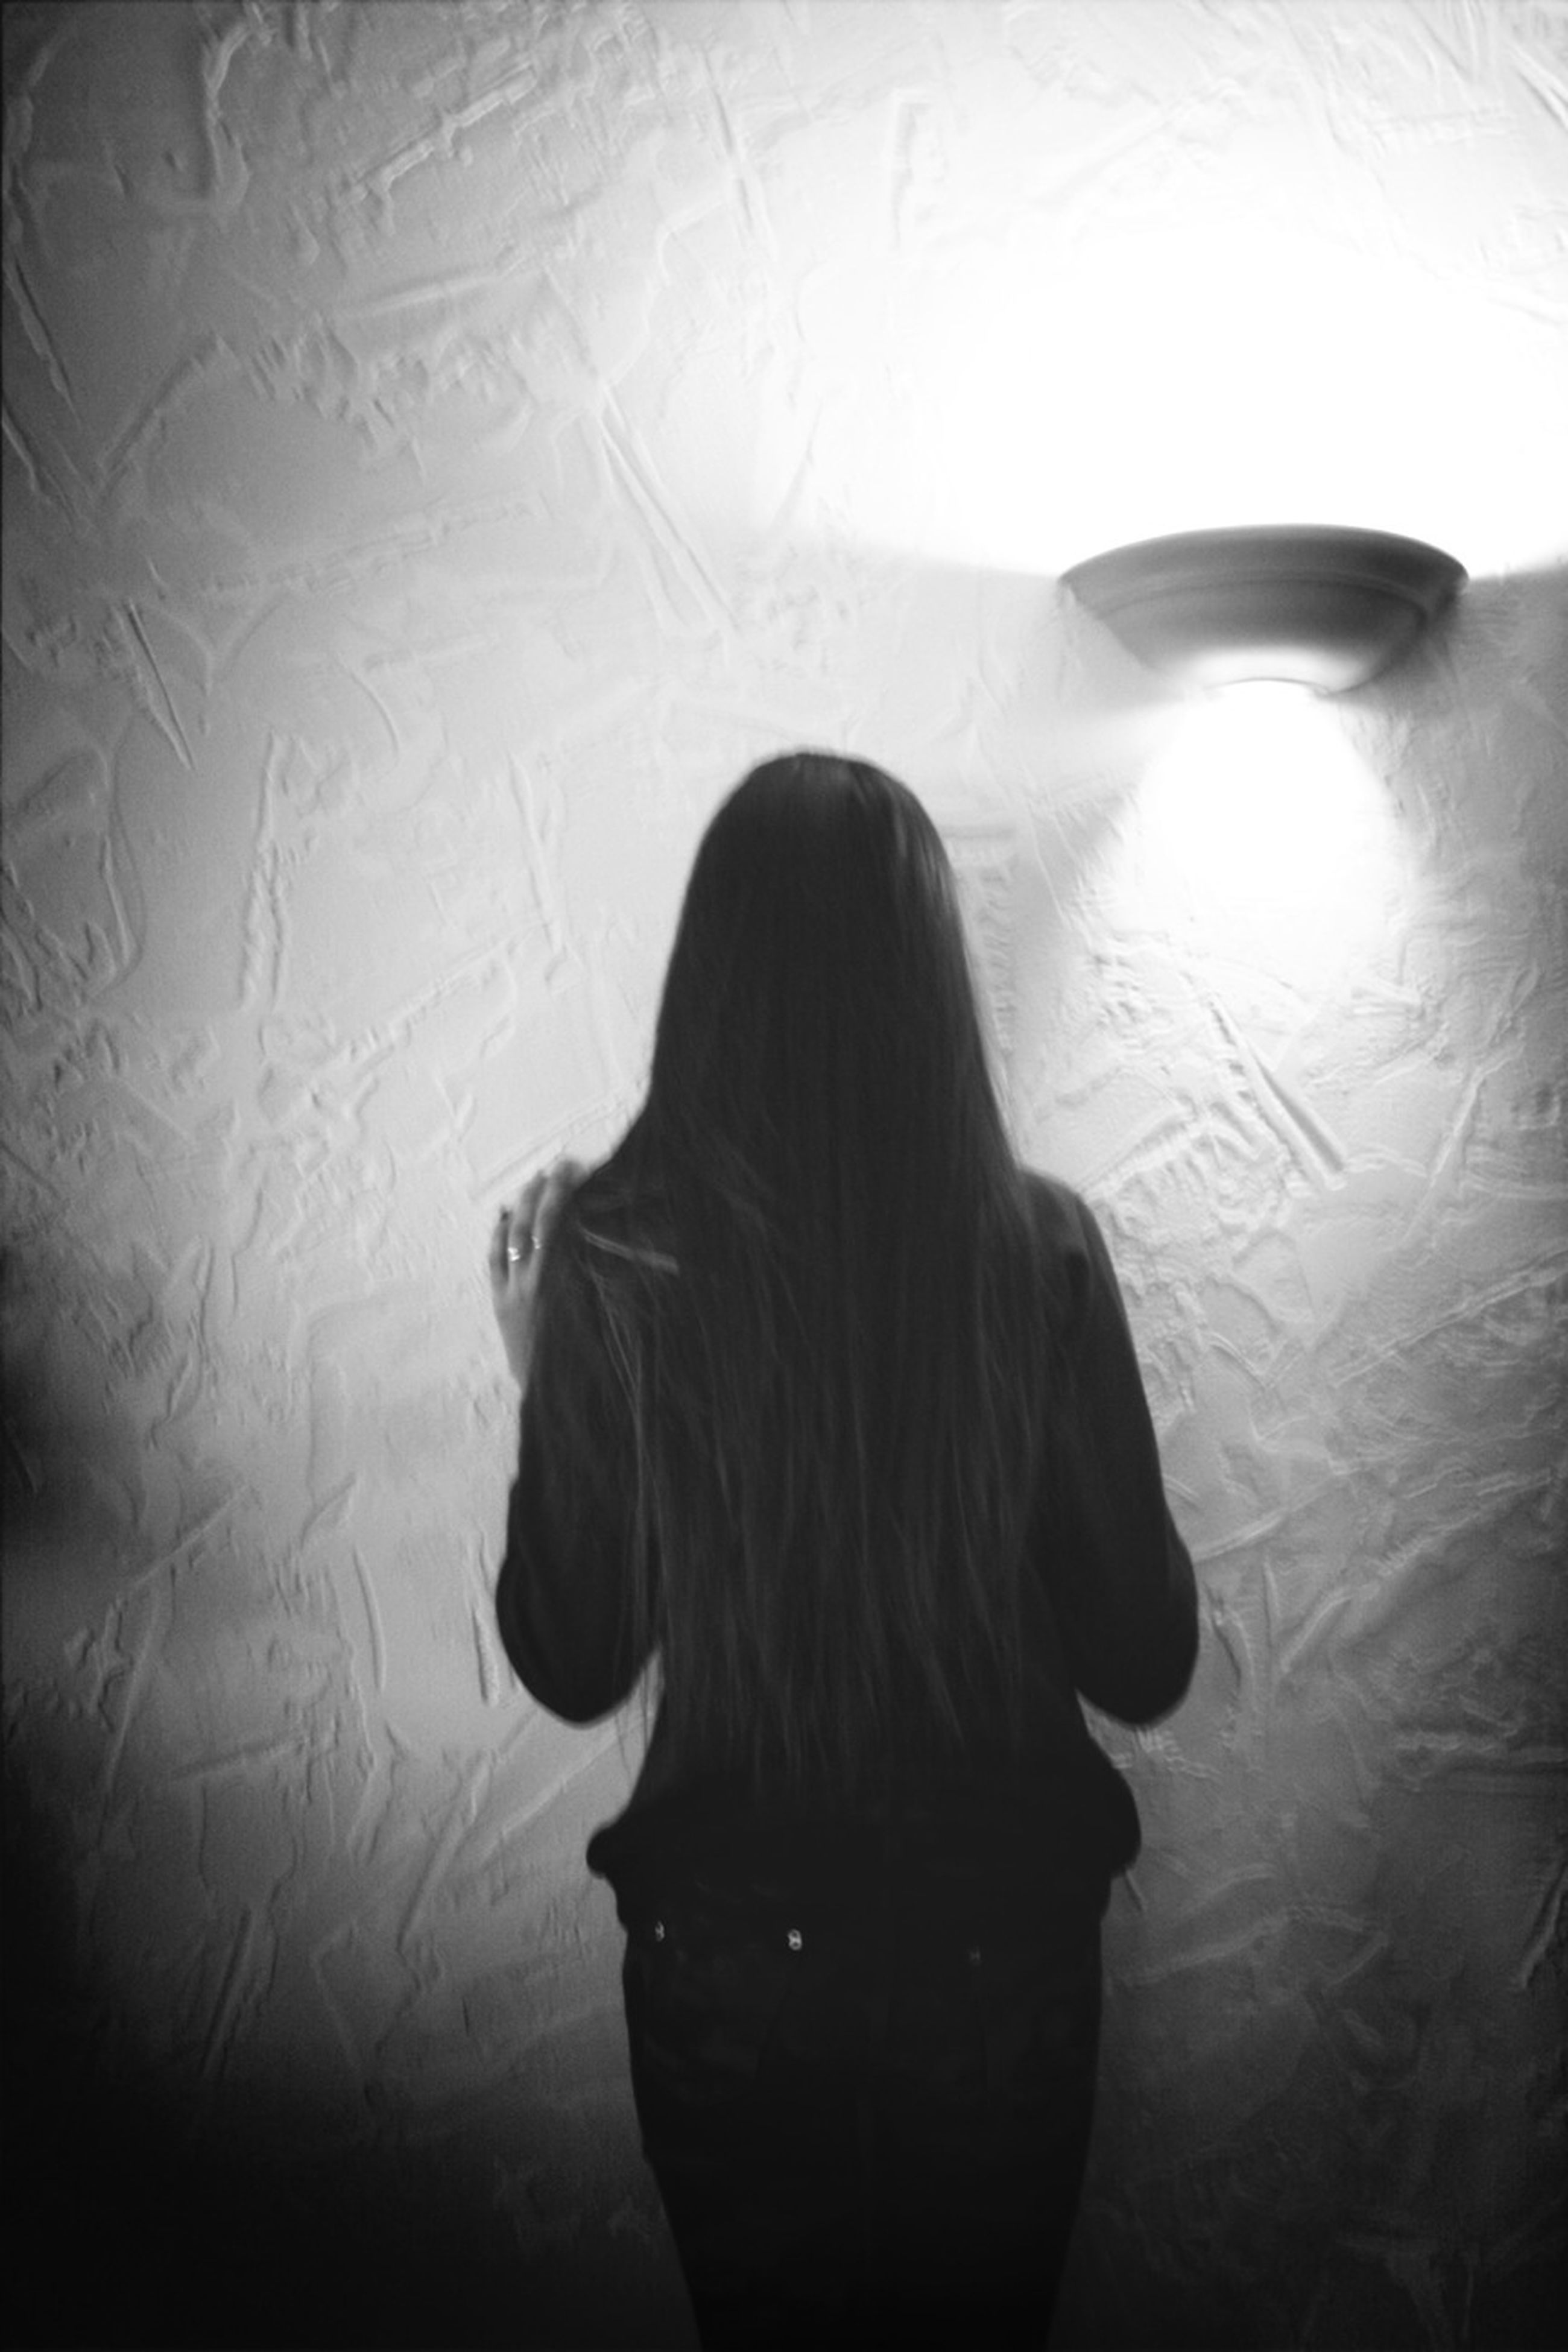 indoors, long hair, lifestyles, rear view, young women, headshot, young adult, leisure activity, waist up, standing, person, illuminated, front view, wall - building feature, three quarter length, silhouette, home interior